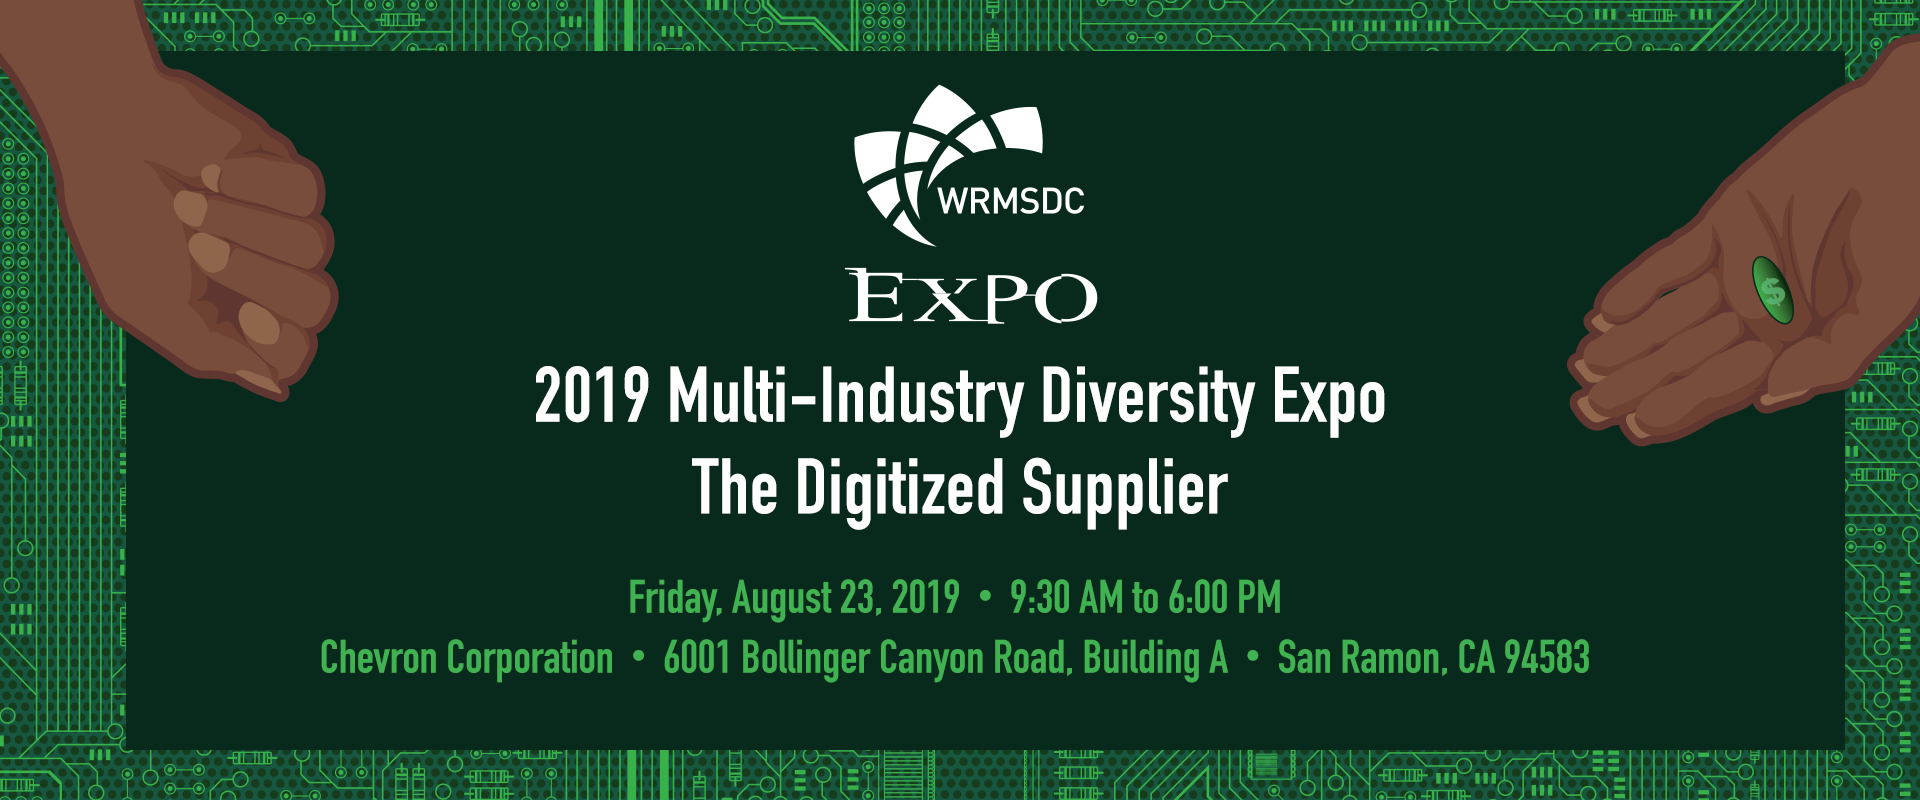 Multi-Industry Expo